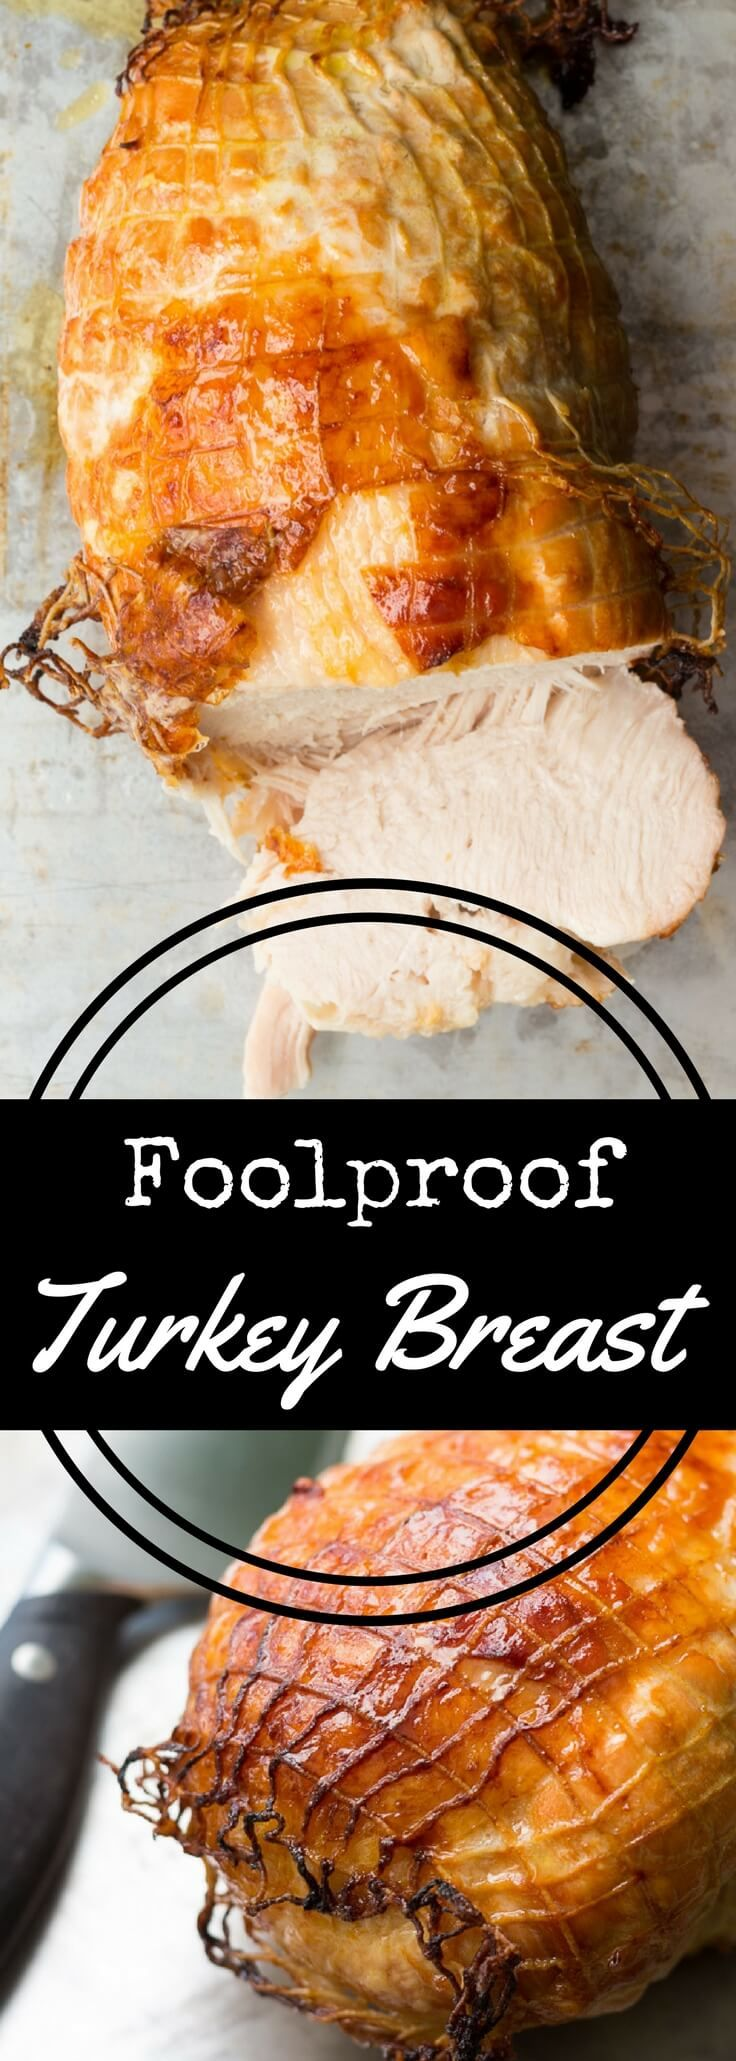 Roast a boneless turkey breast with this boneless turkey breast recipe, flavored with a deliciously savory marinade. Perfect for Thanksgiving! via @recipeforperfec